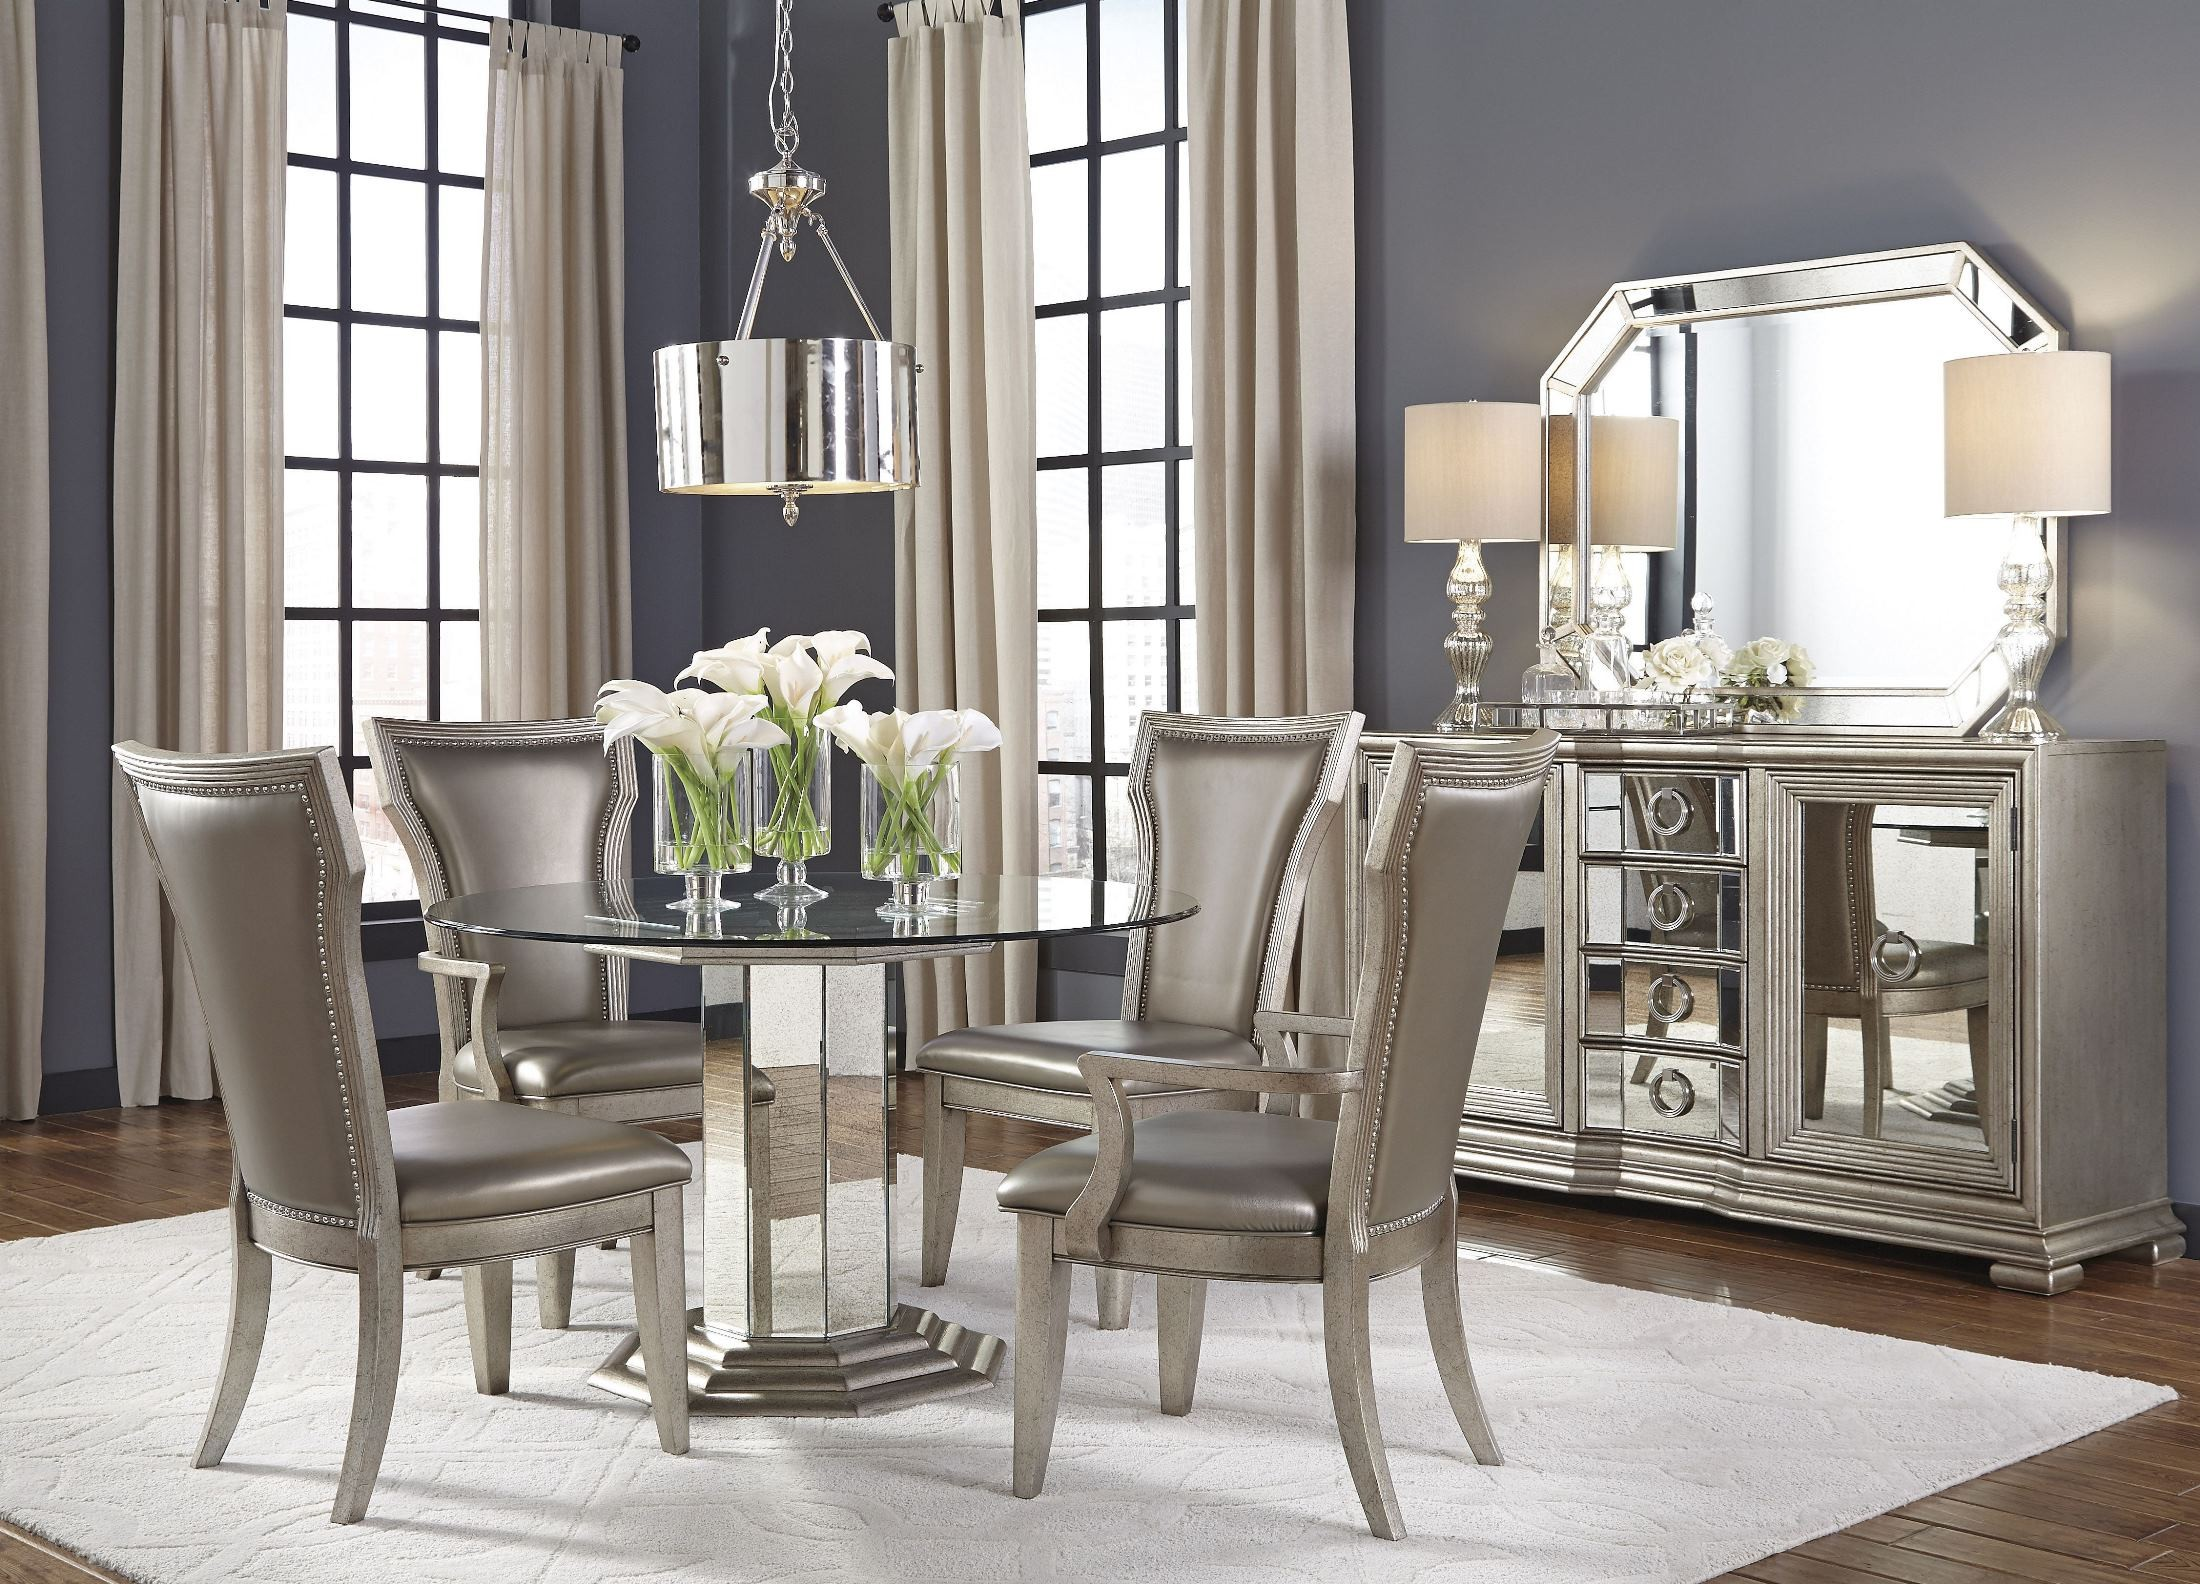 Pedestal dining room